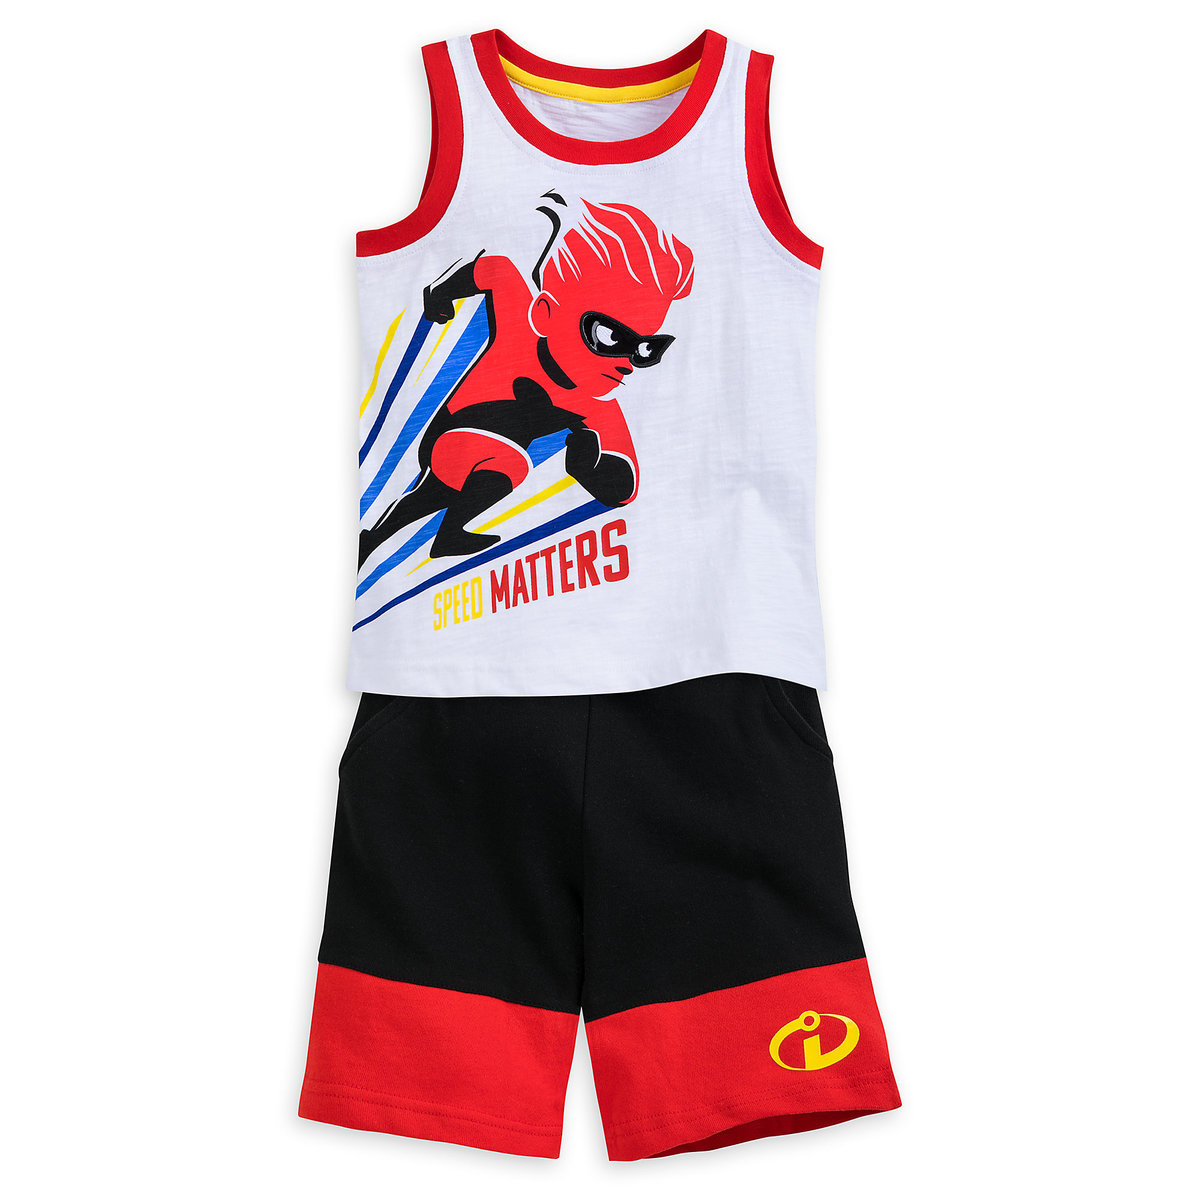 4cba571f8027a Product Image of Dash Tank and Shorts Set for Boys - Incredibles 2 # 1